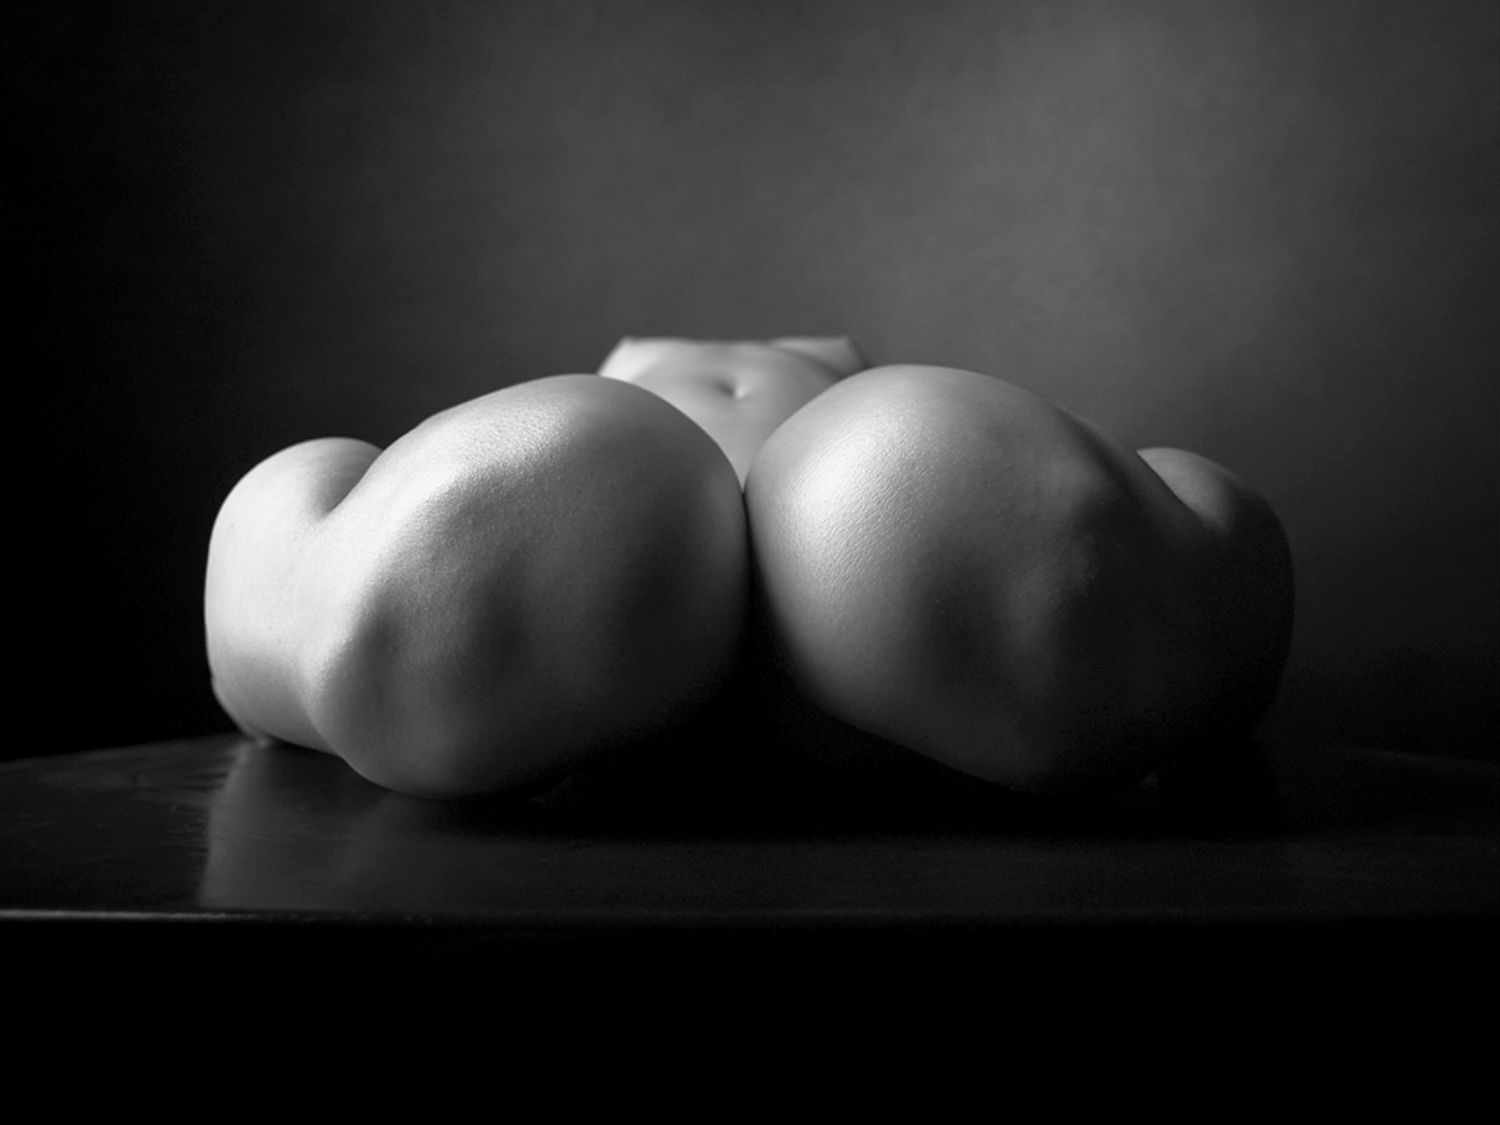 https://www.pinterest.com/maxalvarezfoto/waclaw-wantuch/